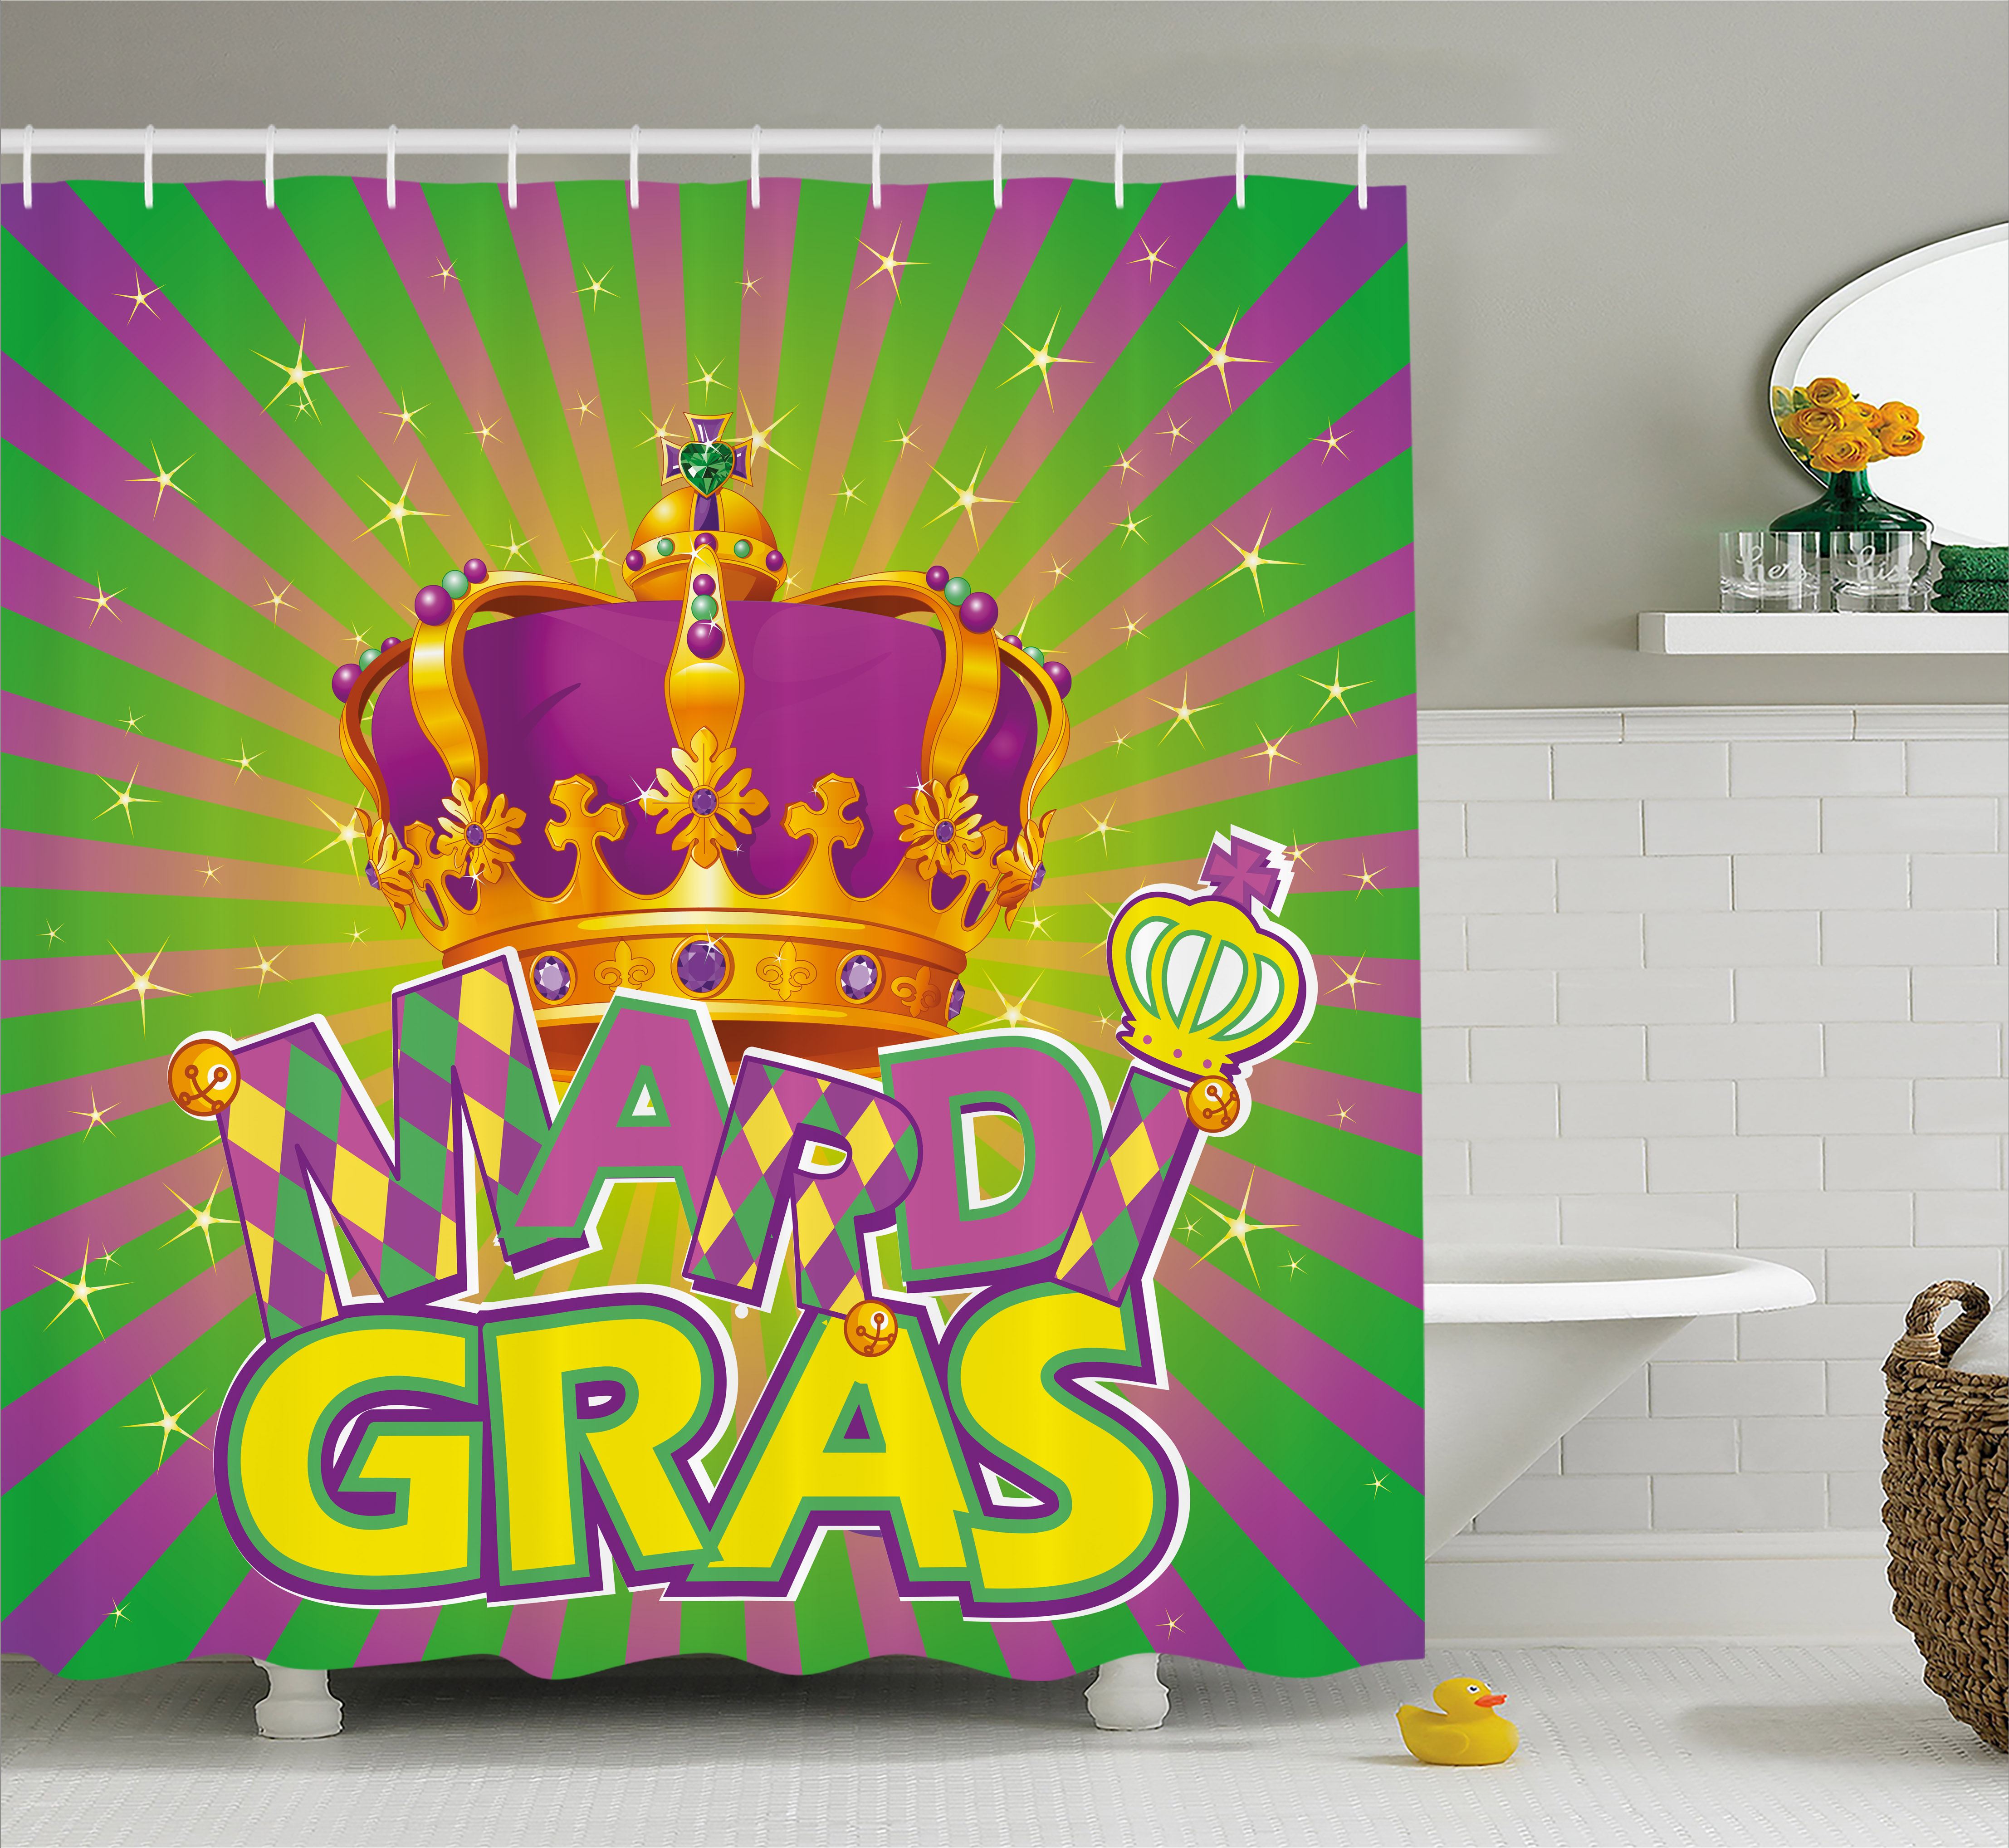 Mardi Gras Shower Curtain Antique Crown On Vintage Radial Backdrop Lettering With Checkered Pattern Fabric Bathroom Set With Hooks 69w X 70l